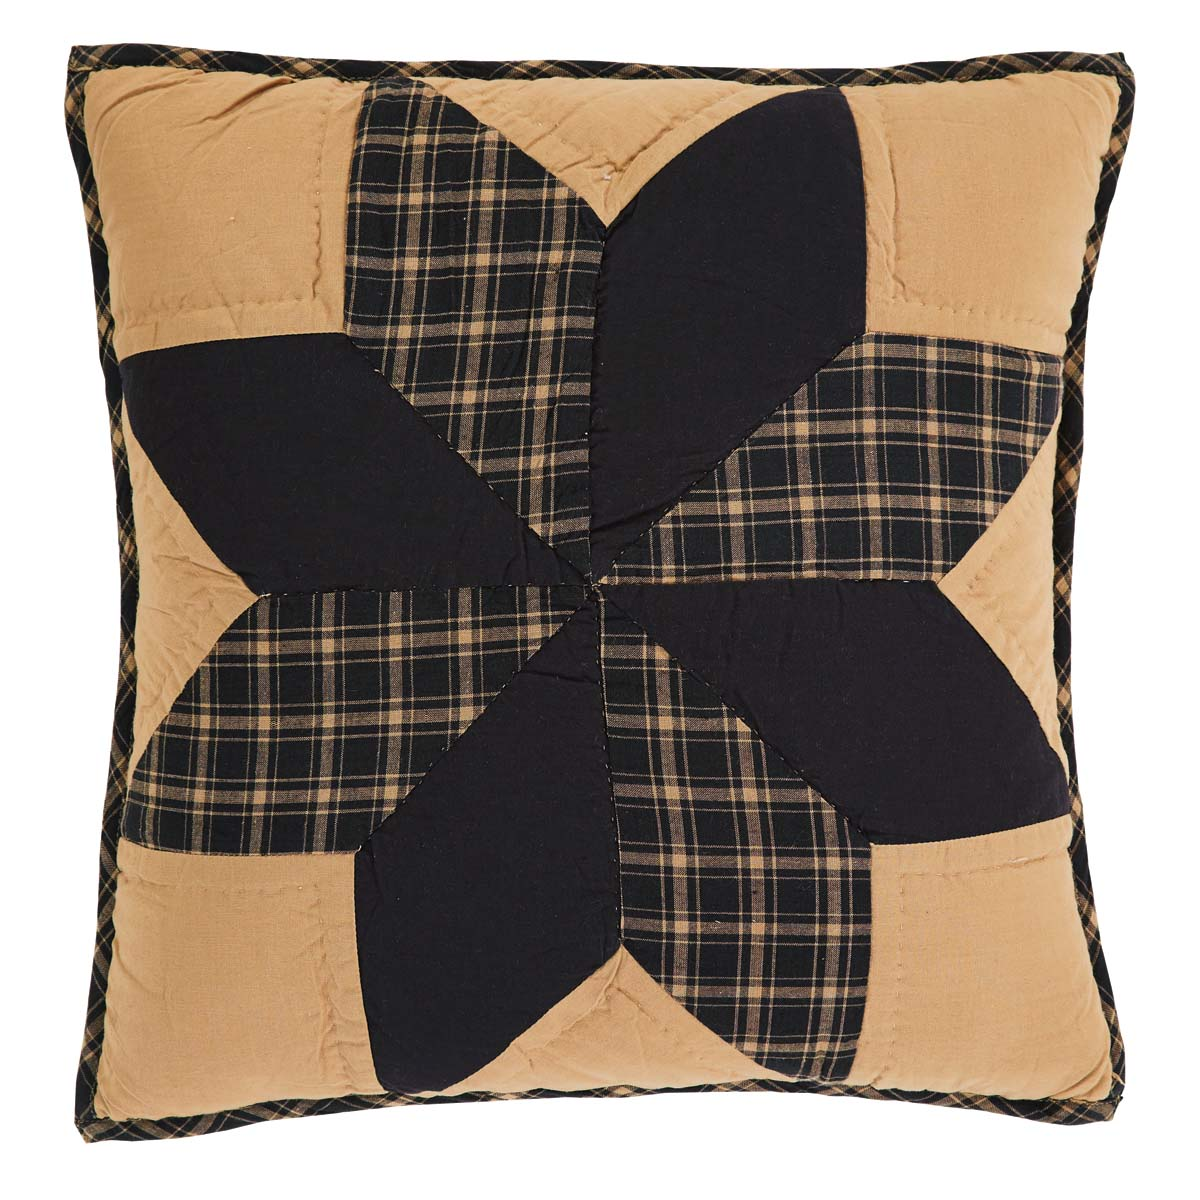 Country Black Primitive Bedding Lansing Black Cotton Hand Quilted Patchwork Star Square Pillow (Pillow Cover, Pillow Insert)